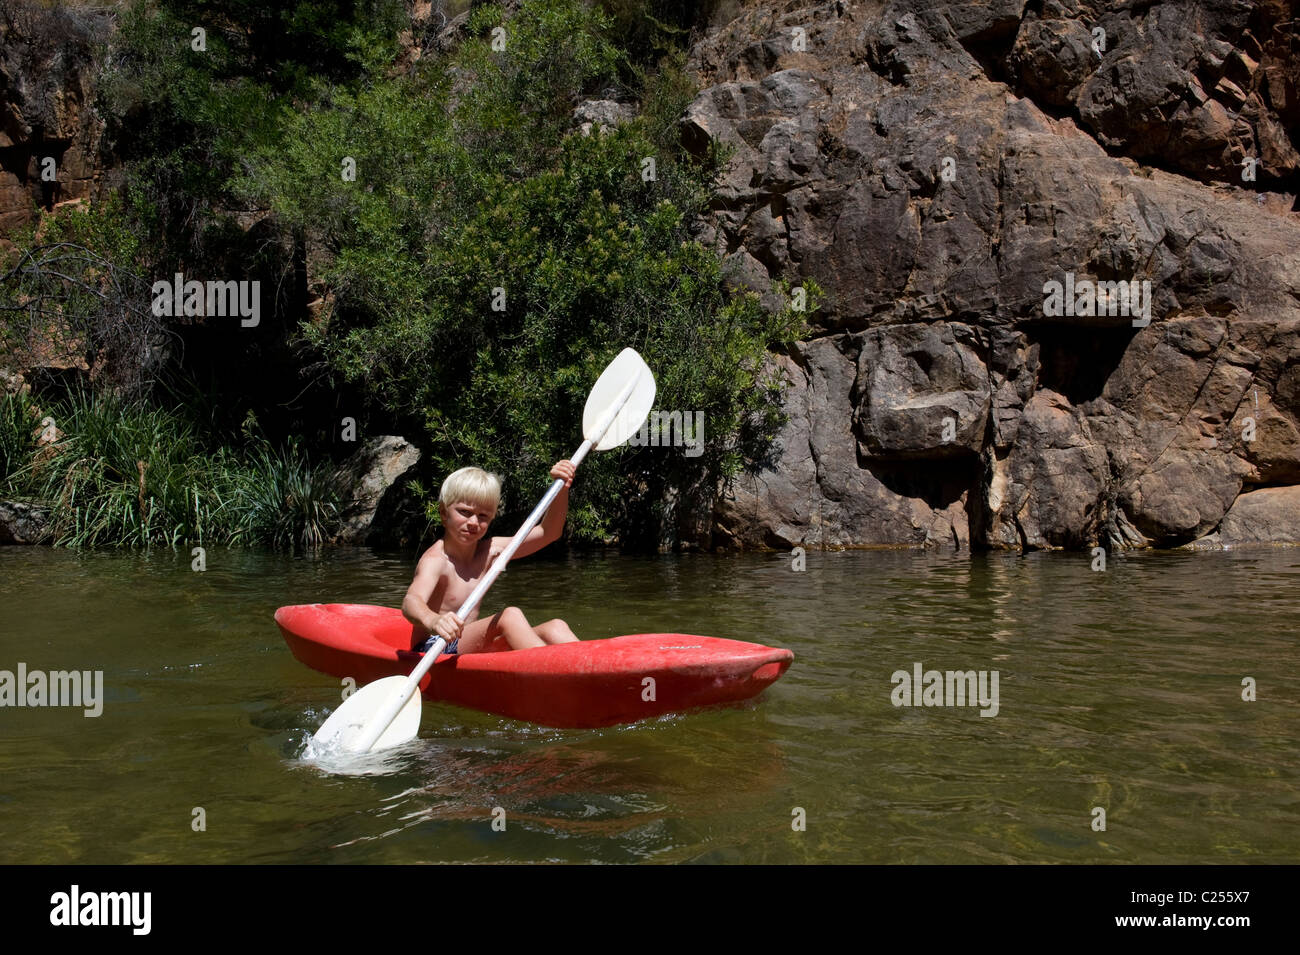 Boy paddling in a canoe on the Rondegat River, Cedarberg, Western Cape, South Africa - Stock Image